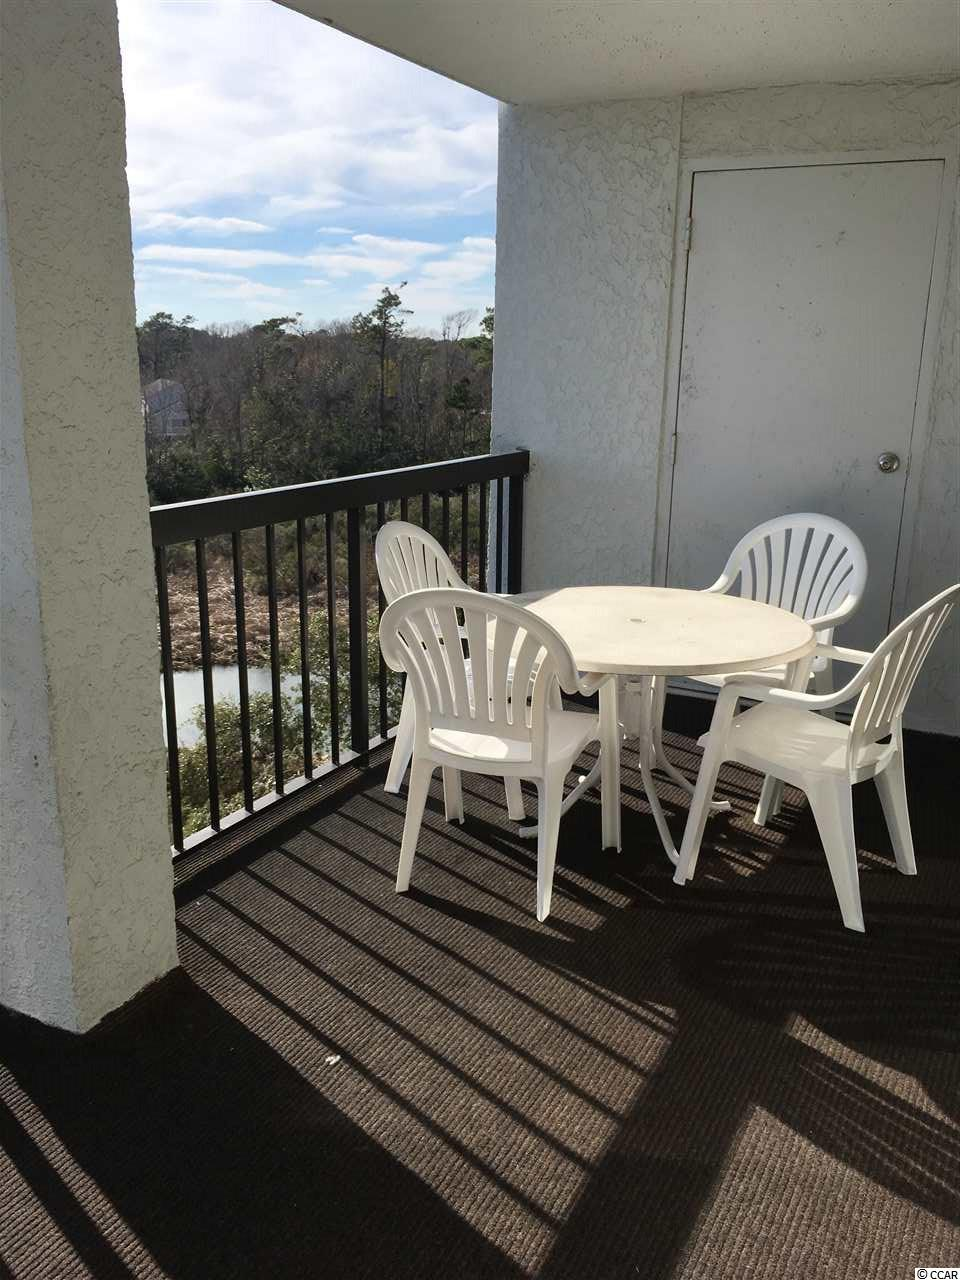 Have you seen this  SEA MARK TOWER property for sale in Myrtle Beach